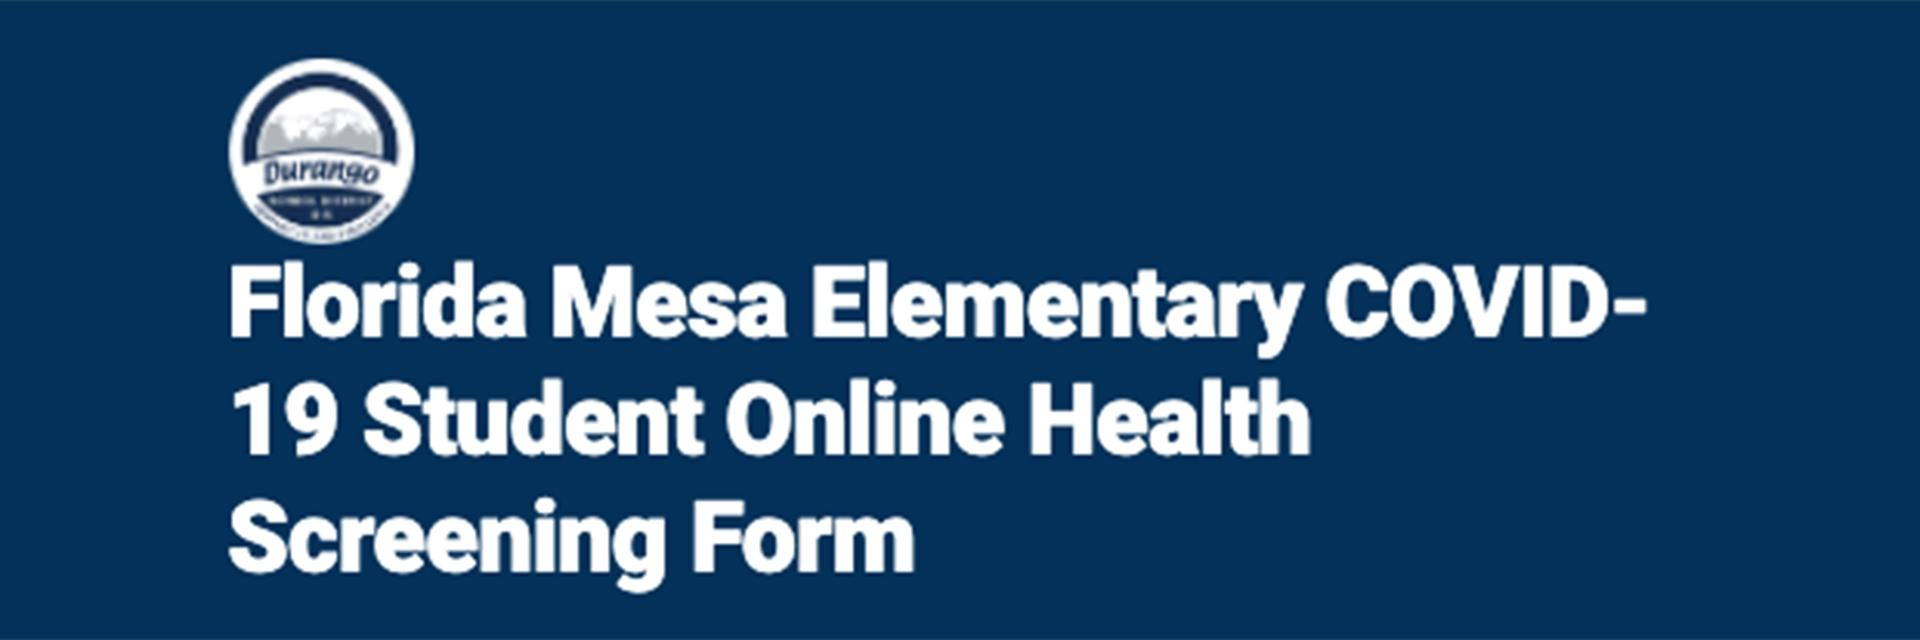 Student Online Health Screen